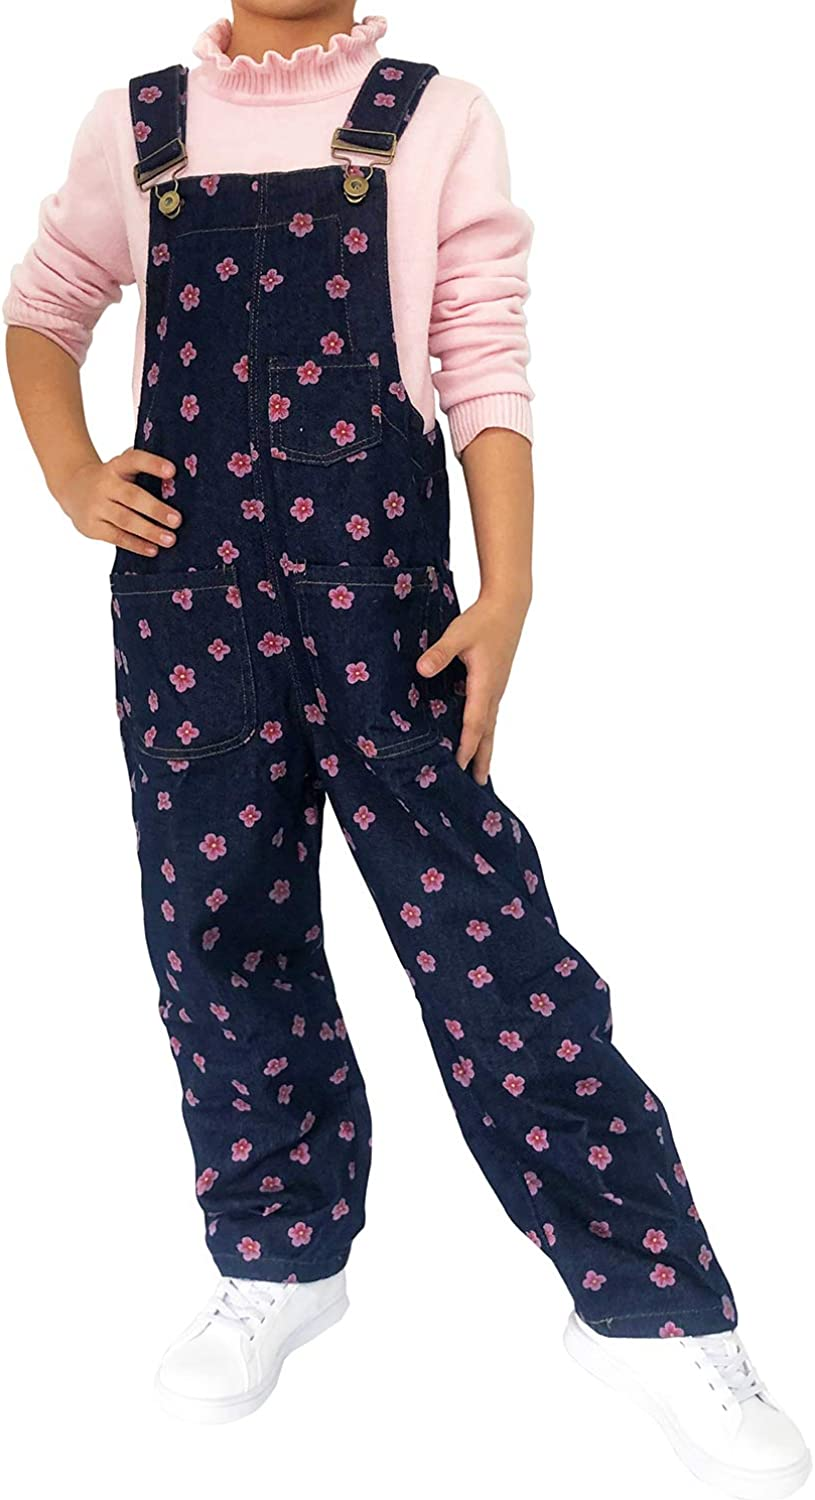 Peacolate 3-14Years Fresno Mall Big Girls Overalls JumpsuitRompers Blue Den Animer and price revision